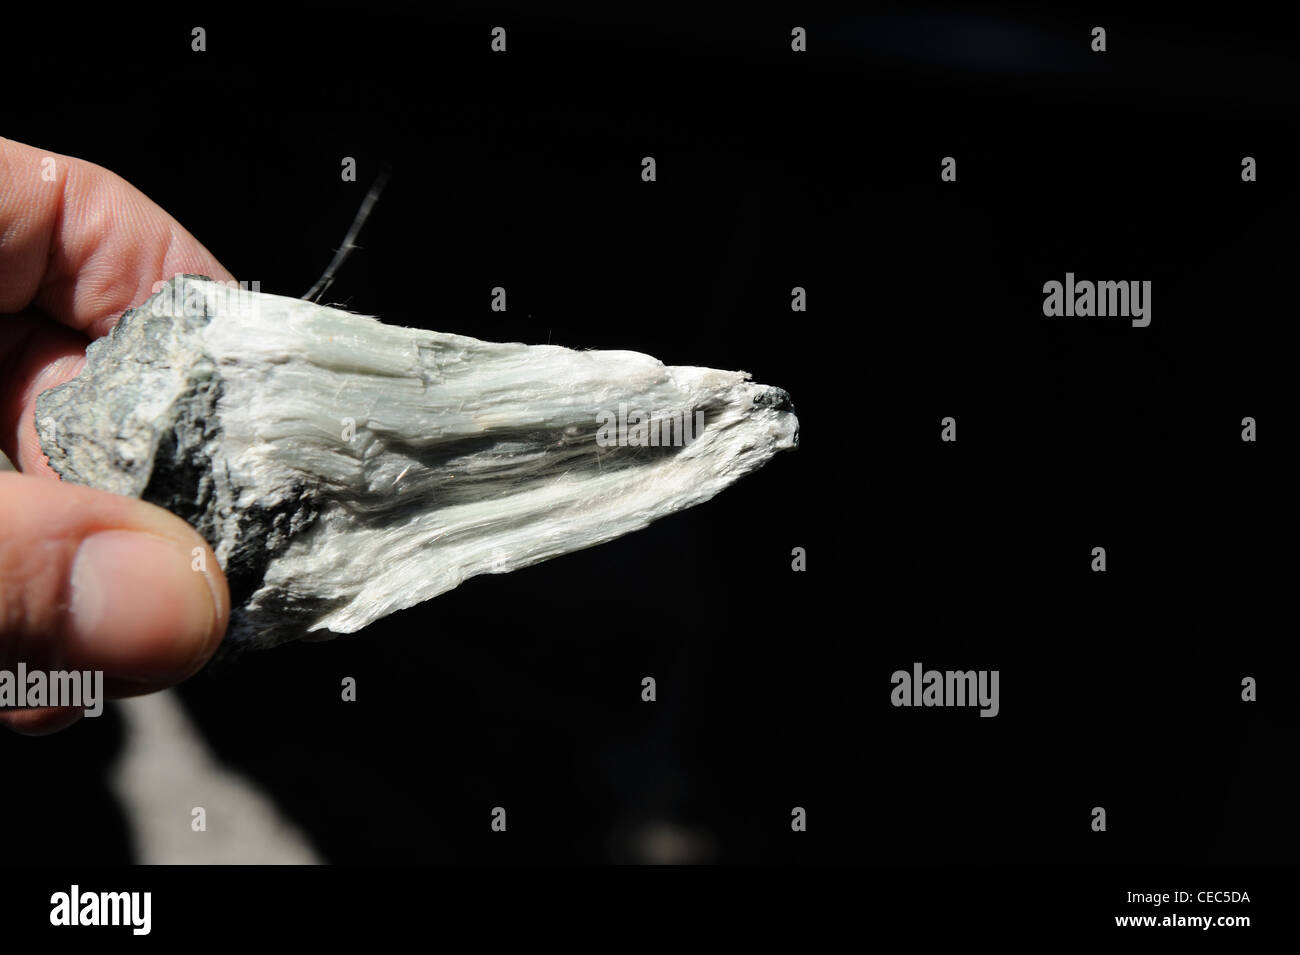 Abetsos Mineral, Fingers holding Asbestos Mineral - Stock Image